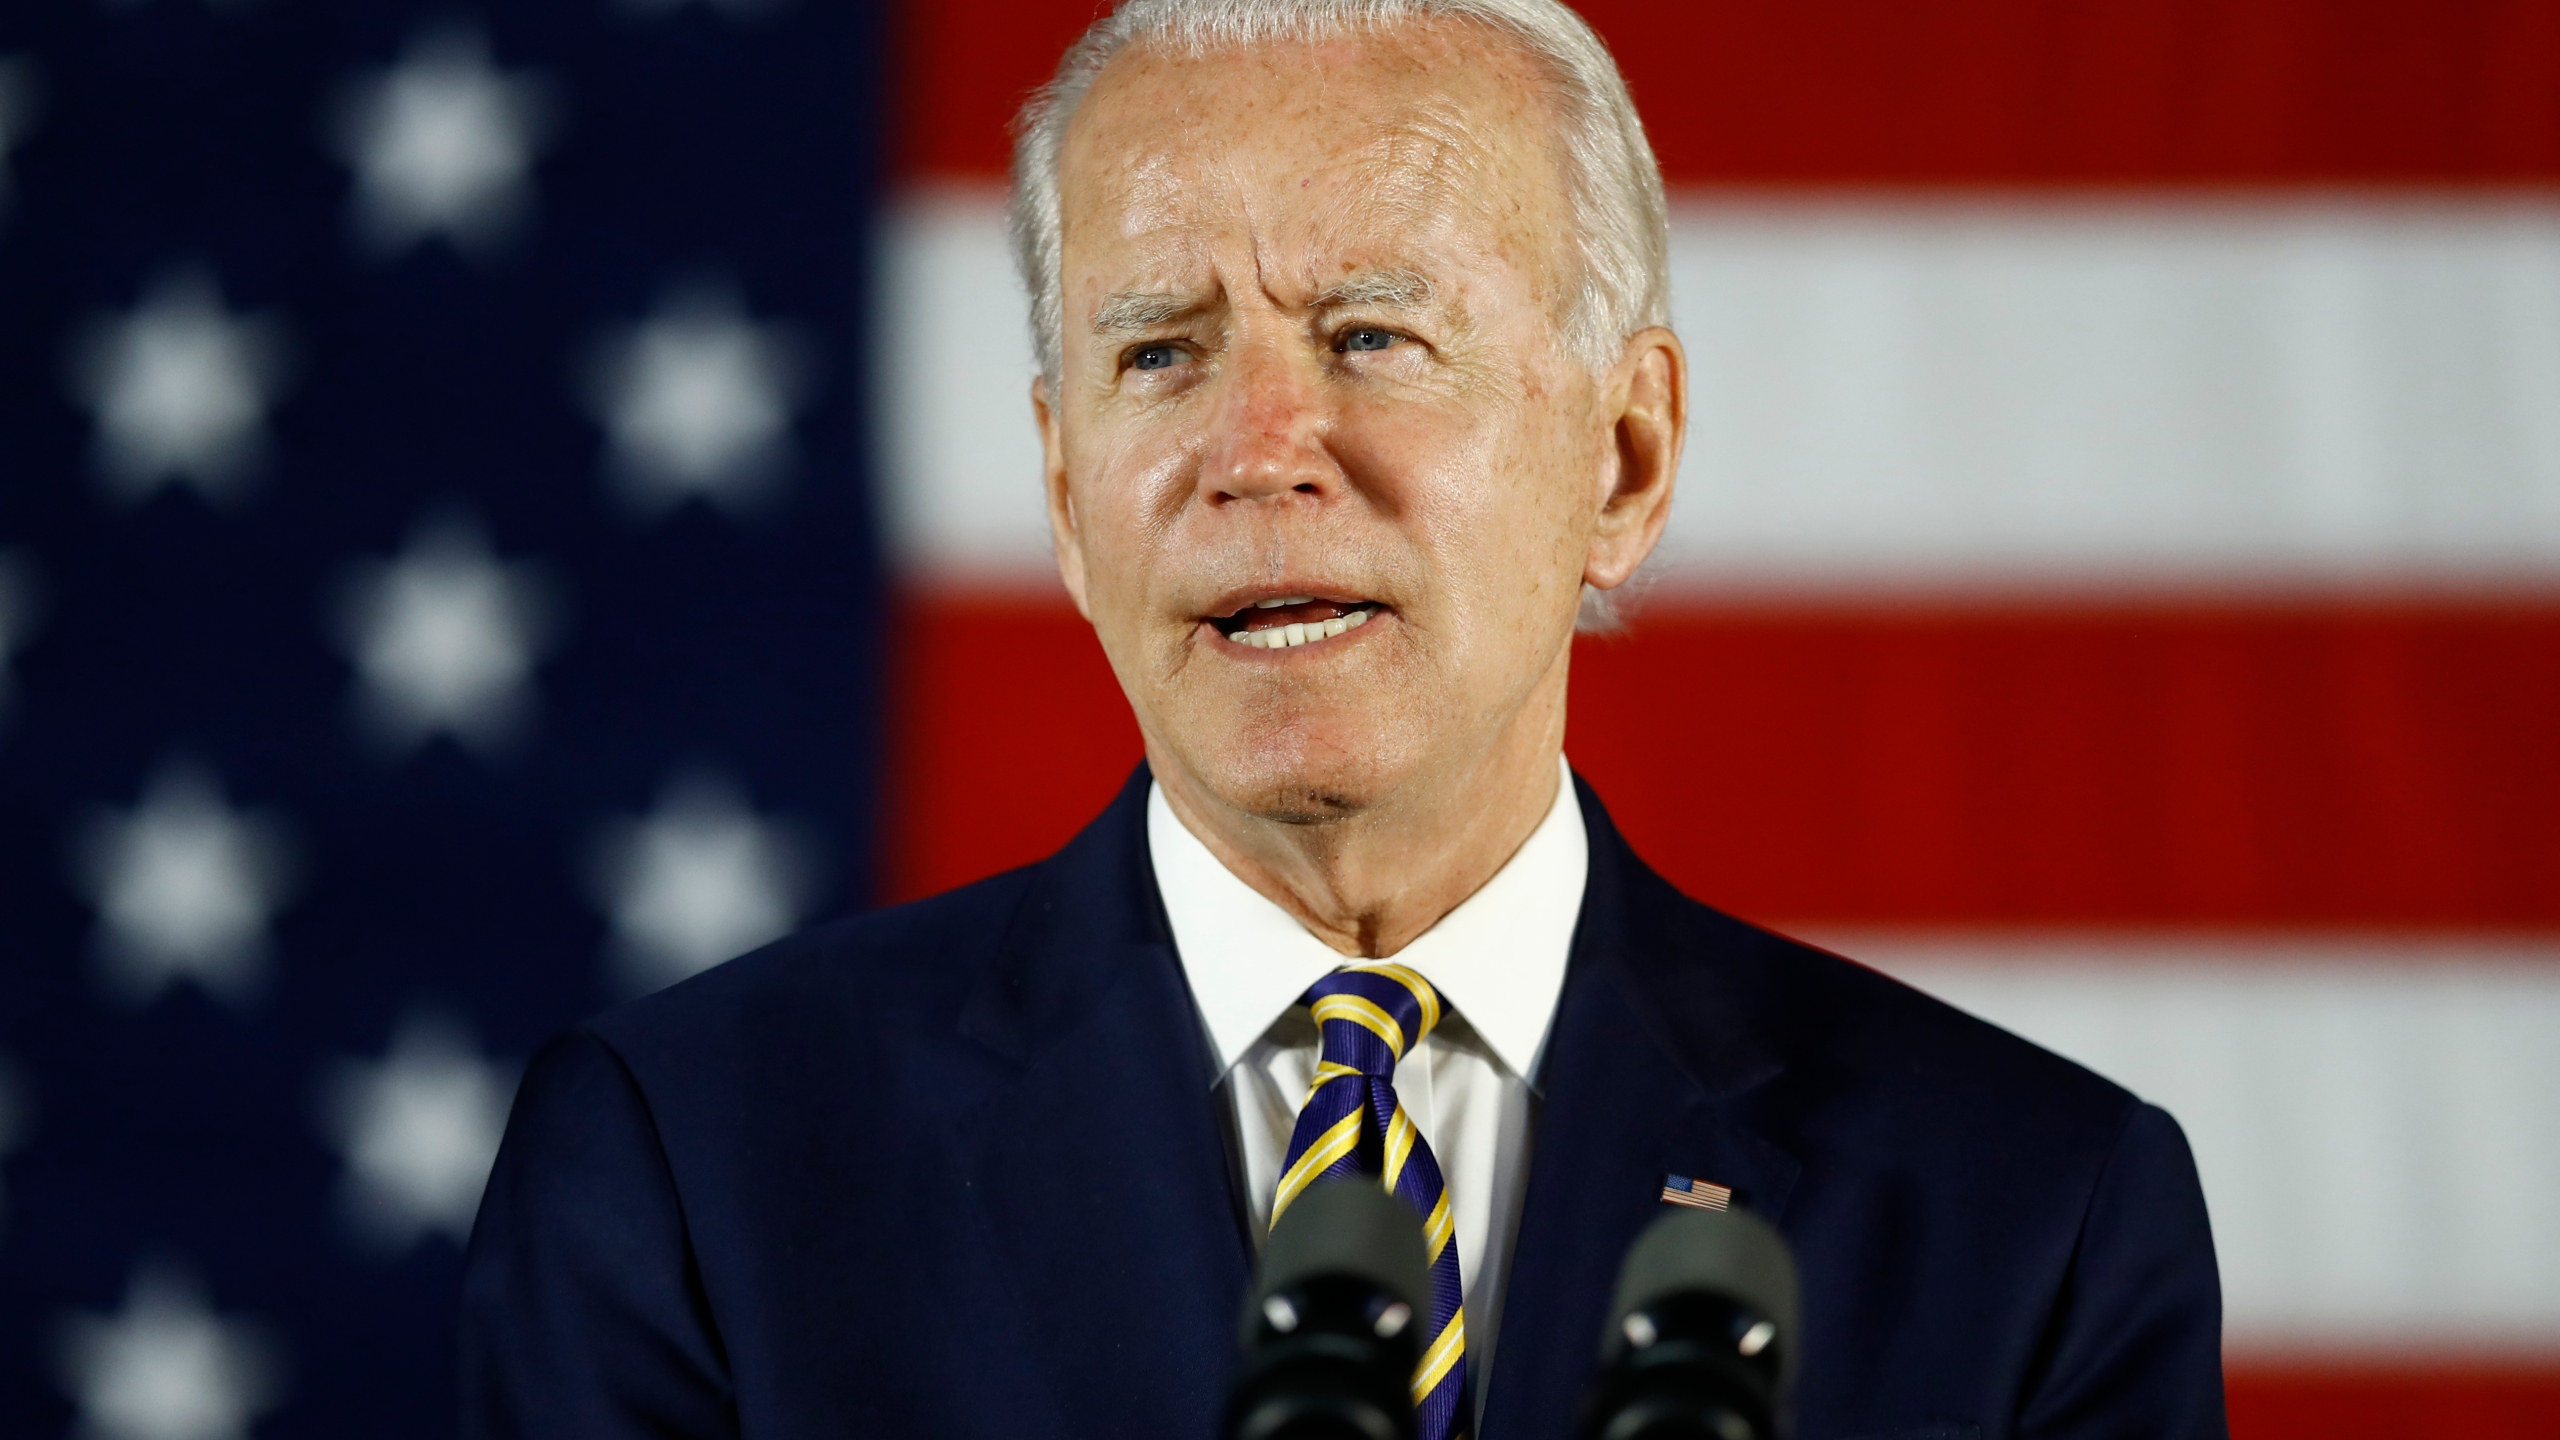 In this June 17, 2020, file photo, Democratic presidential candidate, former Vice President Joe Biden speaks in Darby, Pa. (AP Photo/Matt Slocum)